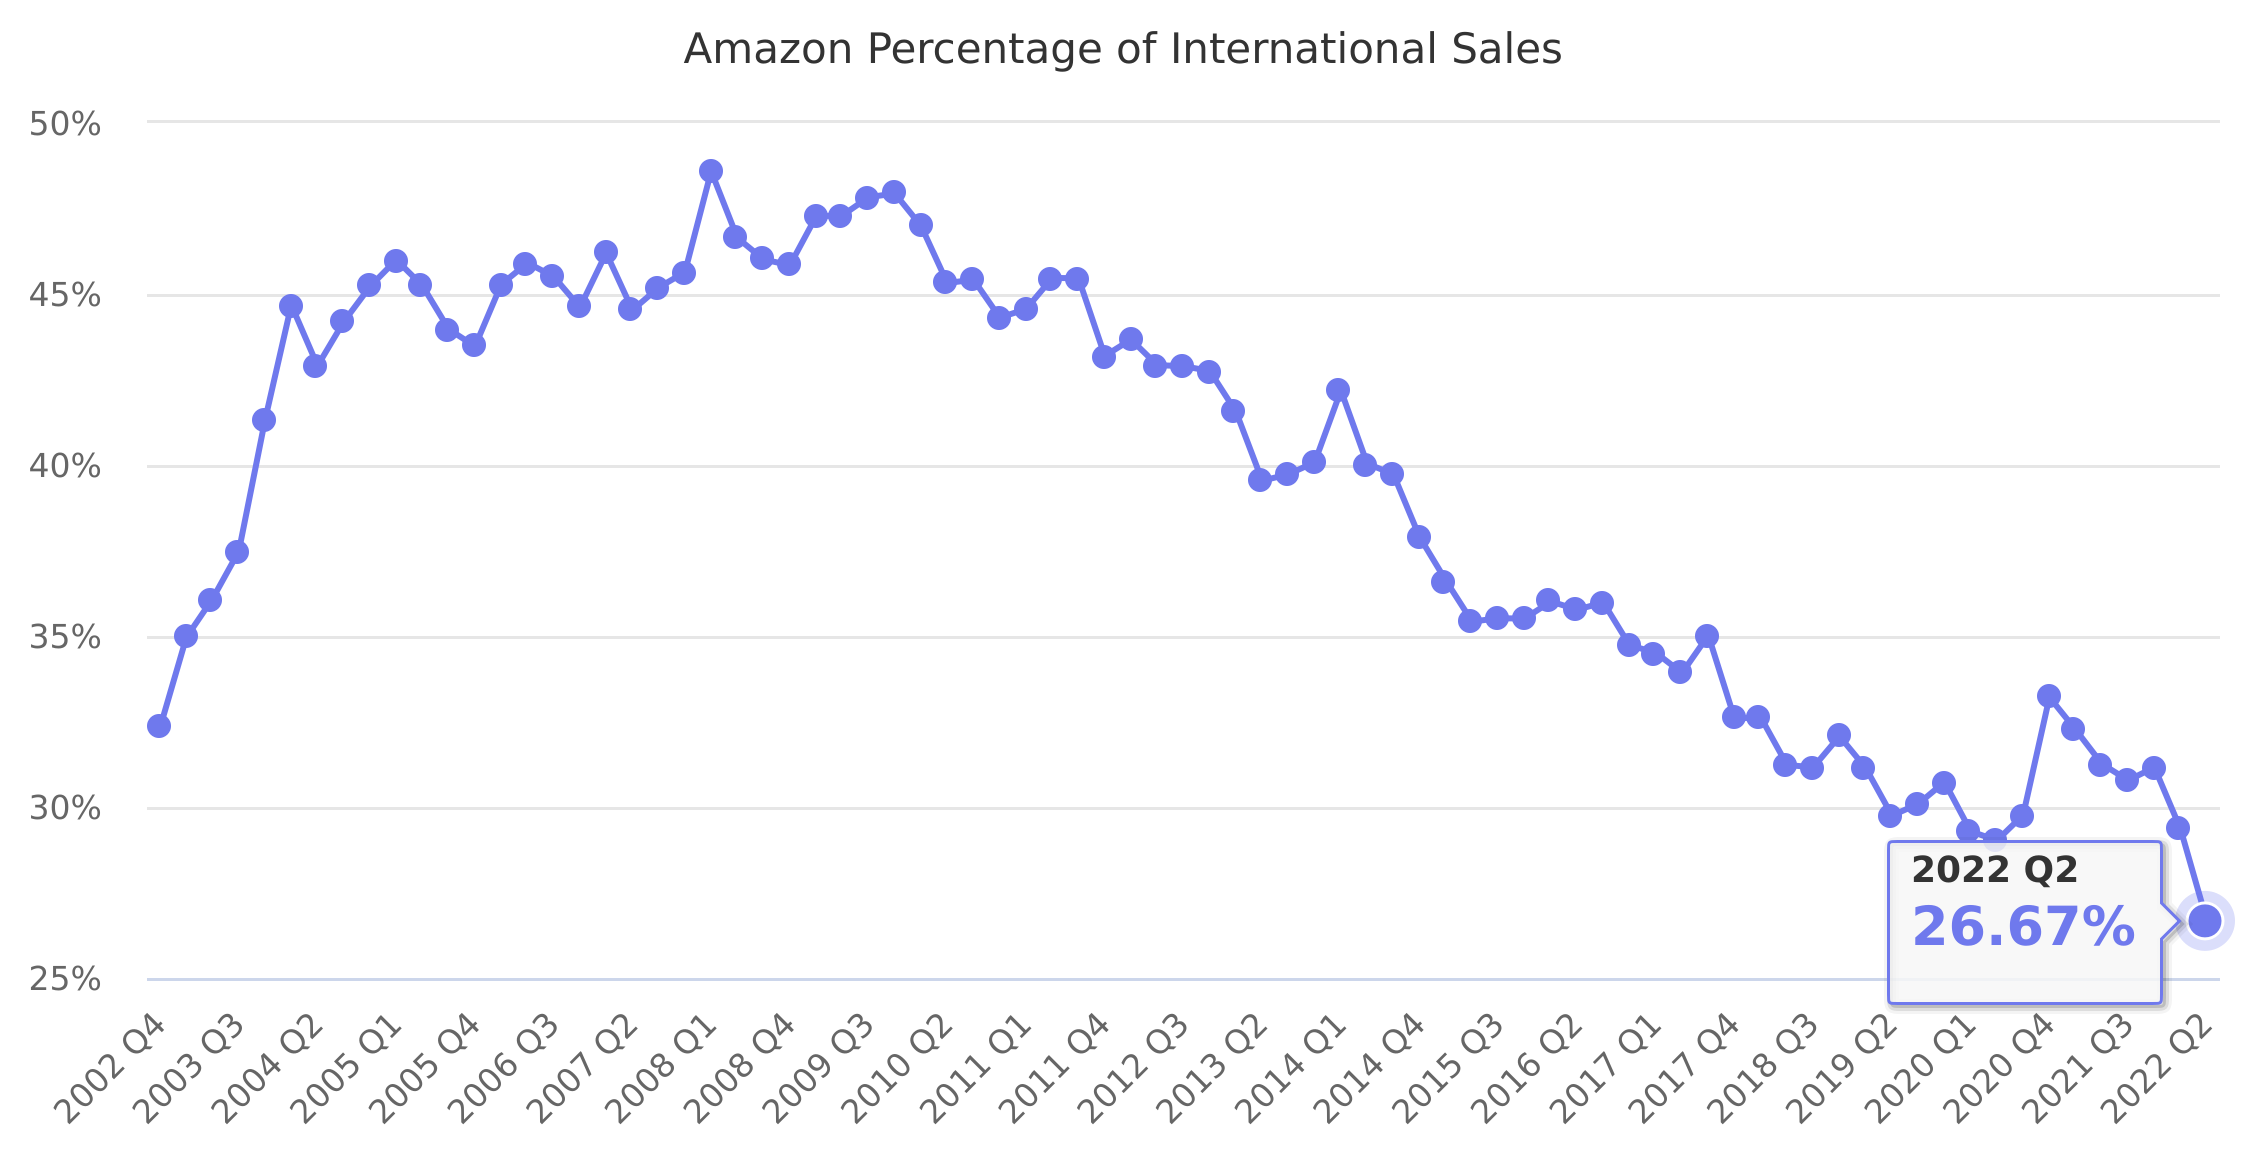 Amazon Percentage of International Sales 2002-2017